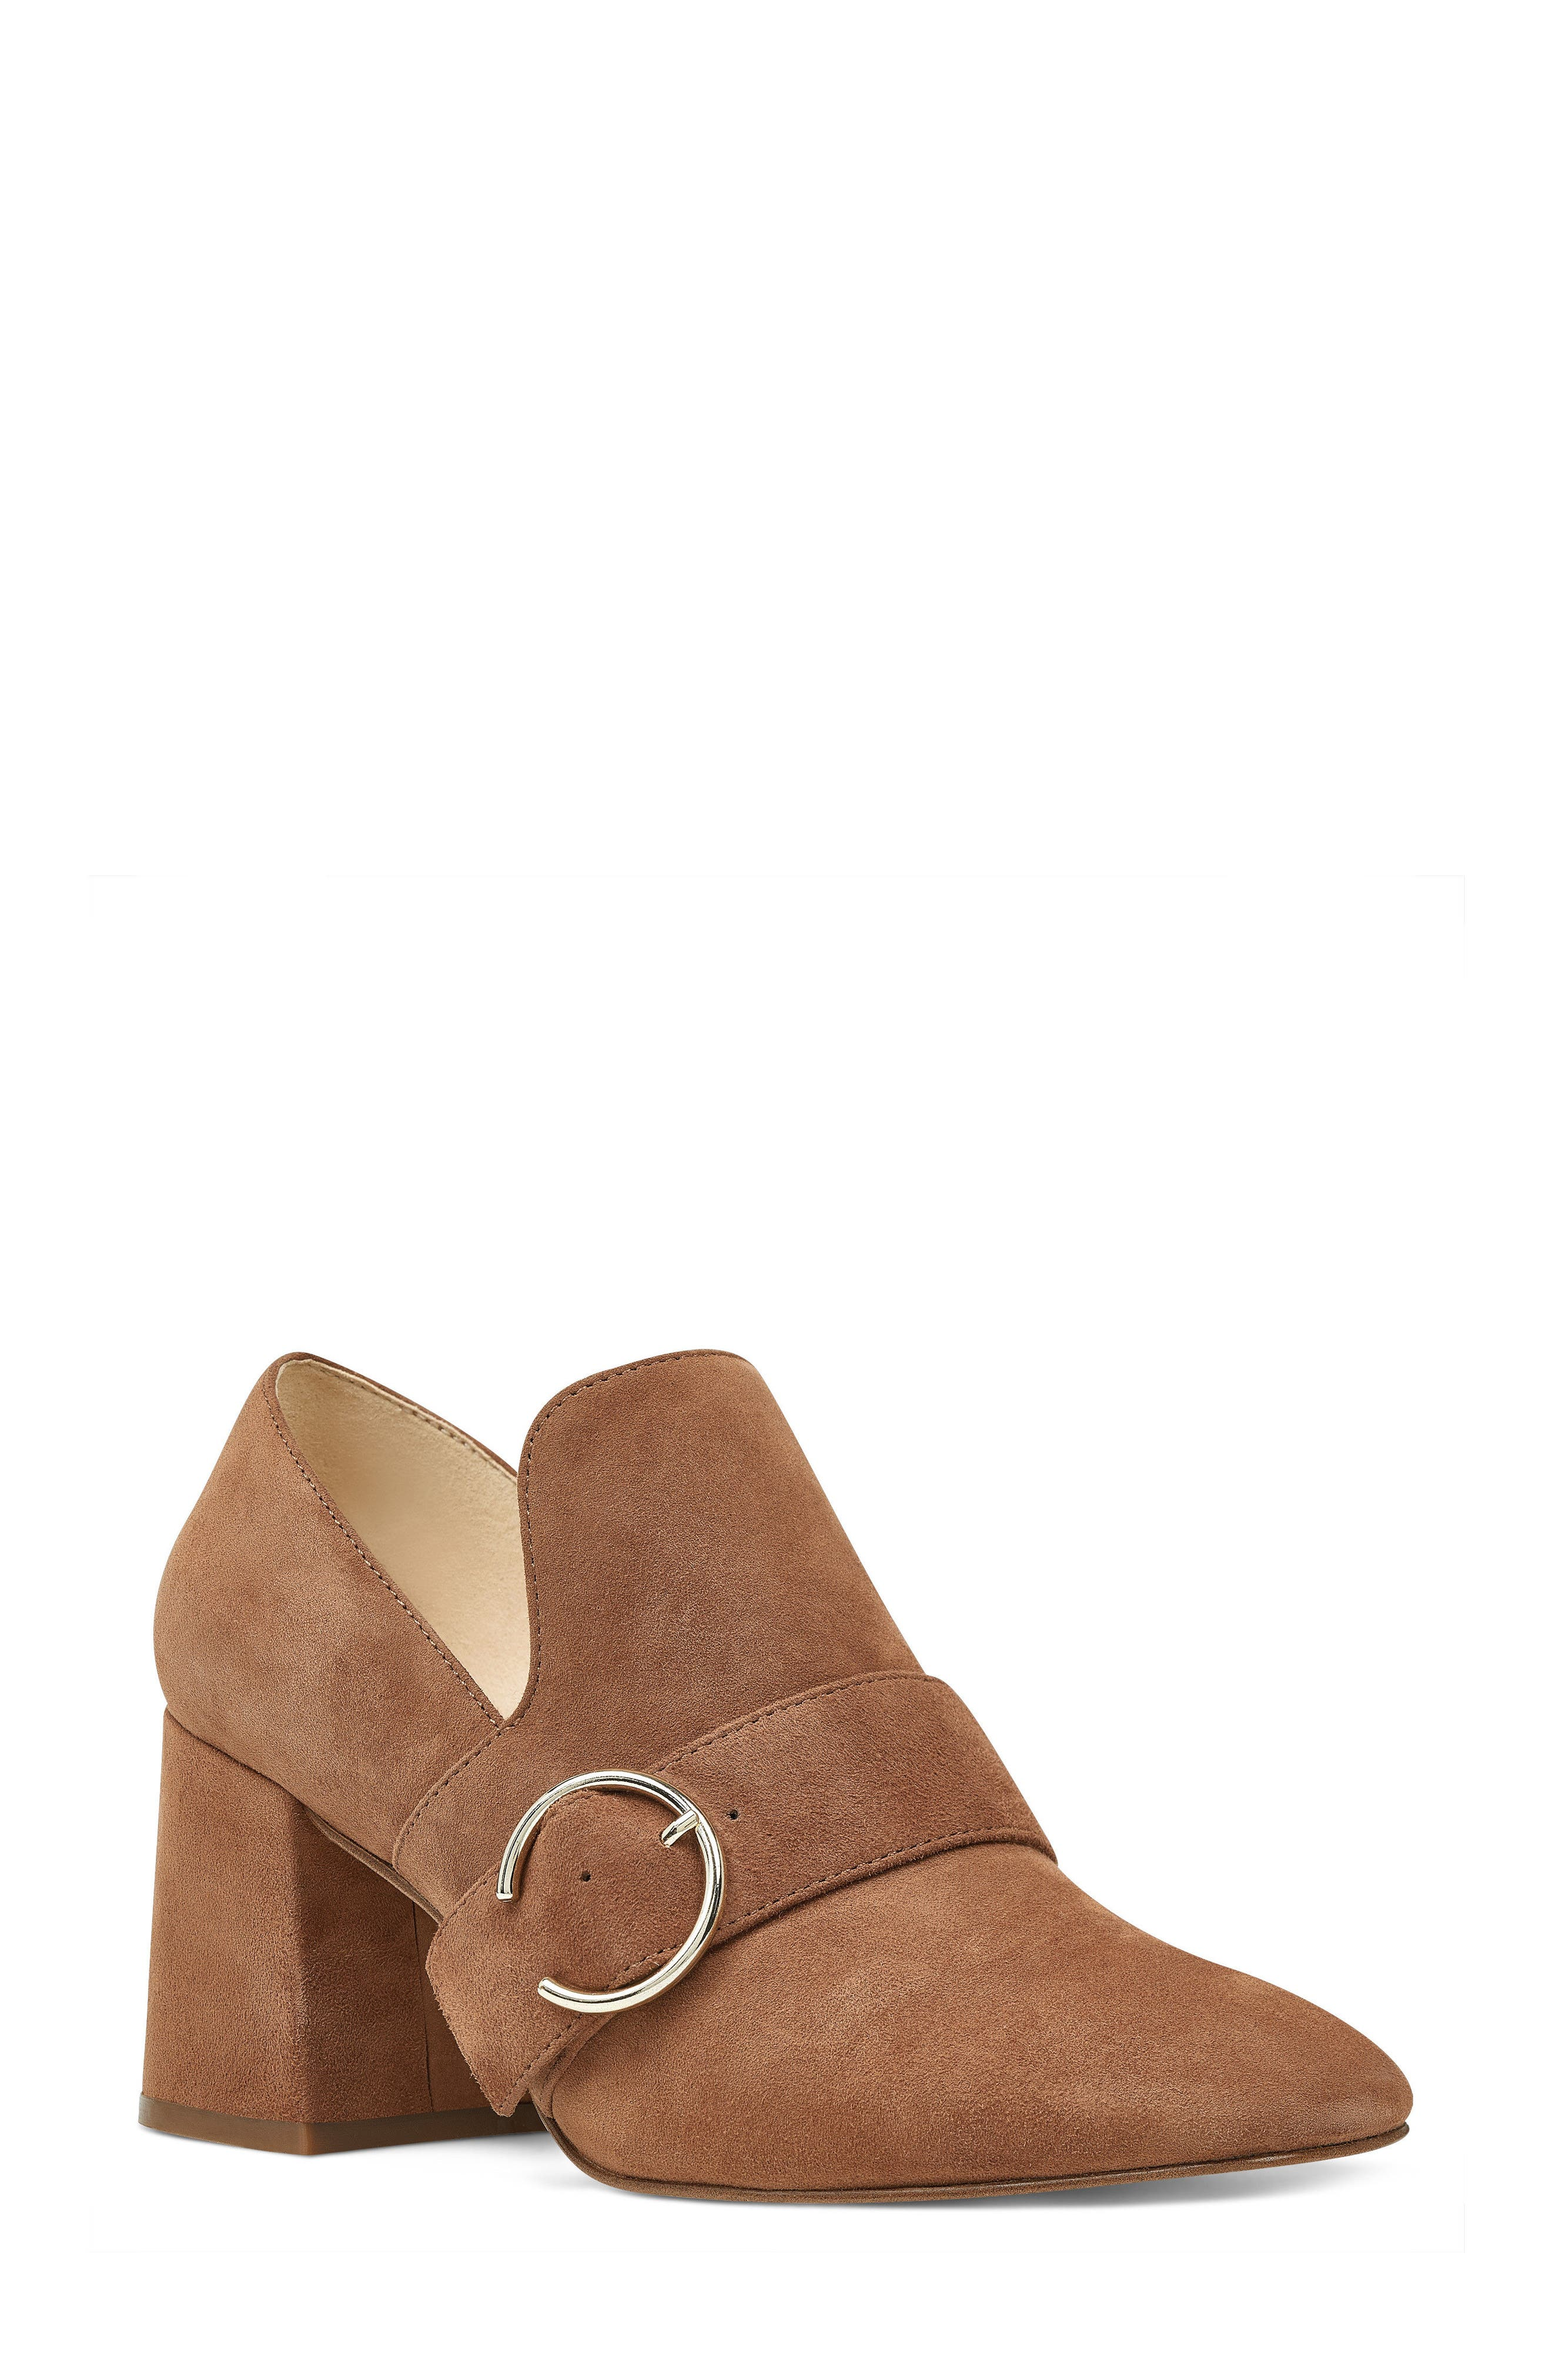 Alberry Buckle Pump,                             Main thumbnail 1, color,                             Dark Natural Suede